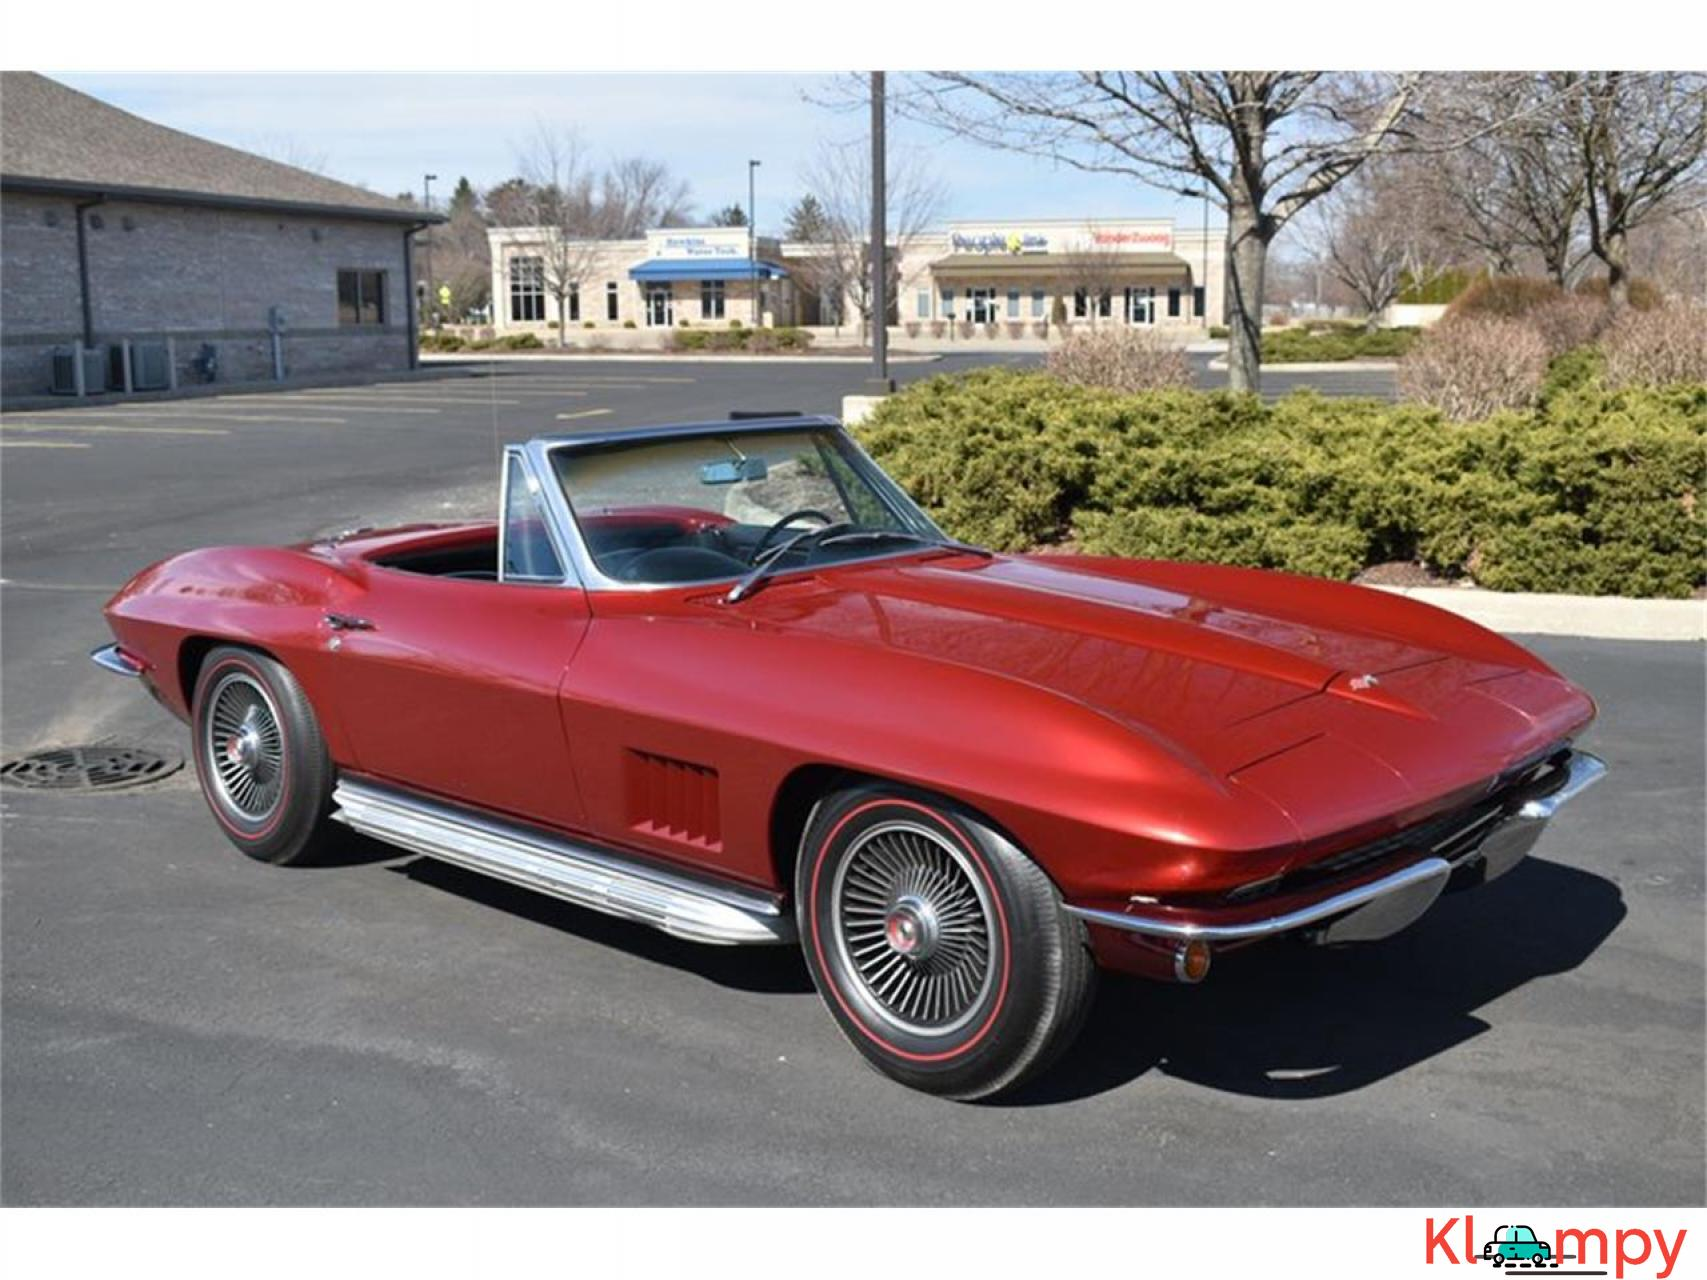 1967 Chevrolet Corvette 350HP 327 Cu In V8 - 5/20